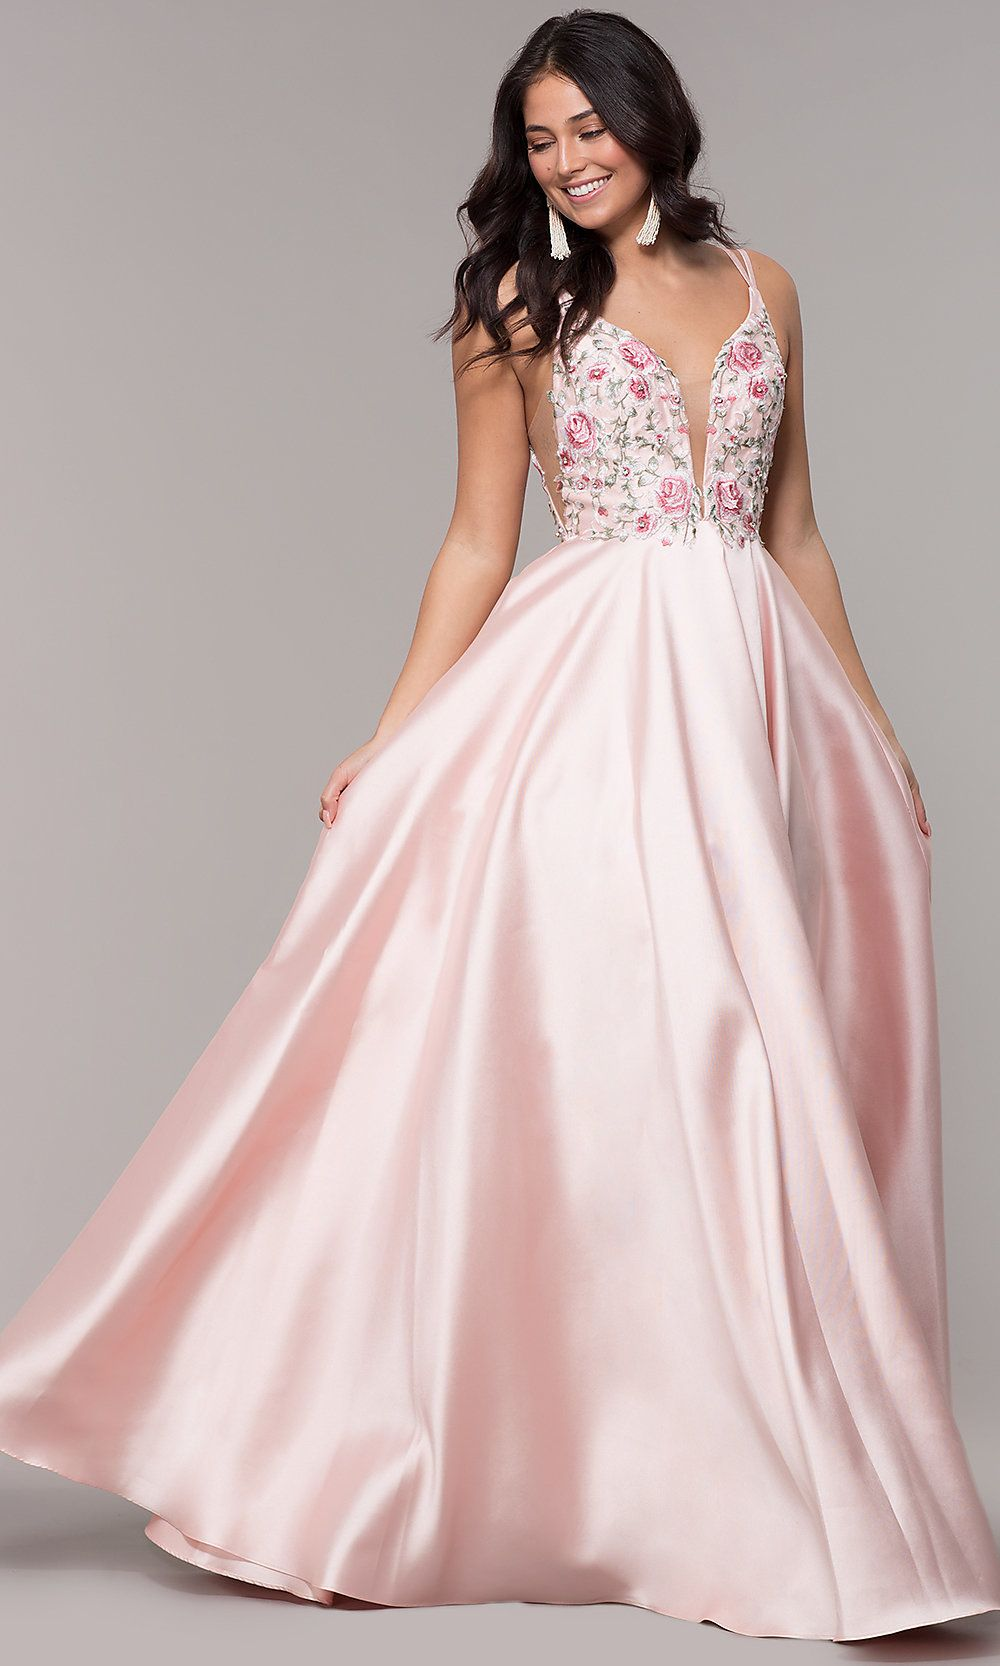 55f3608430 Embroidered-Bodice Long A-Line V-Neck Prom Dress in 2019 | Fashion ...